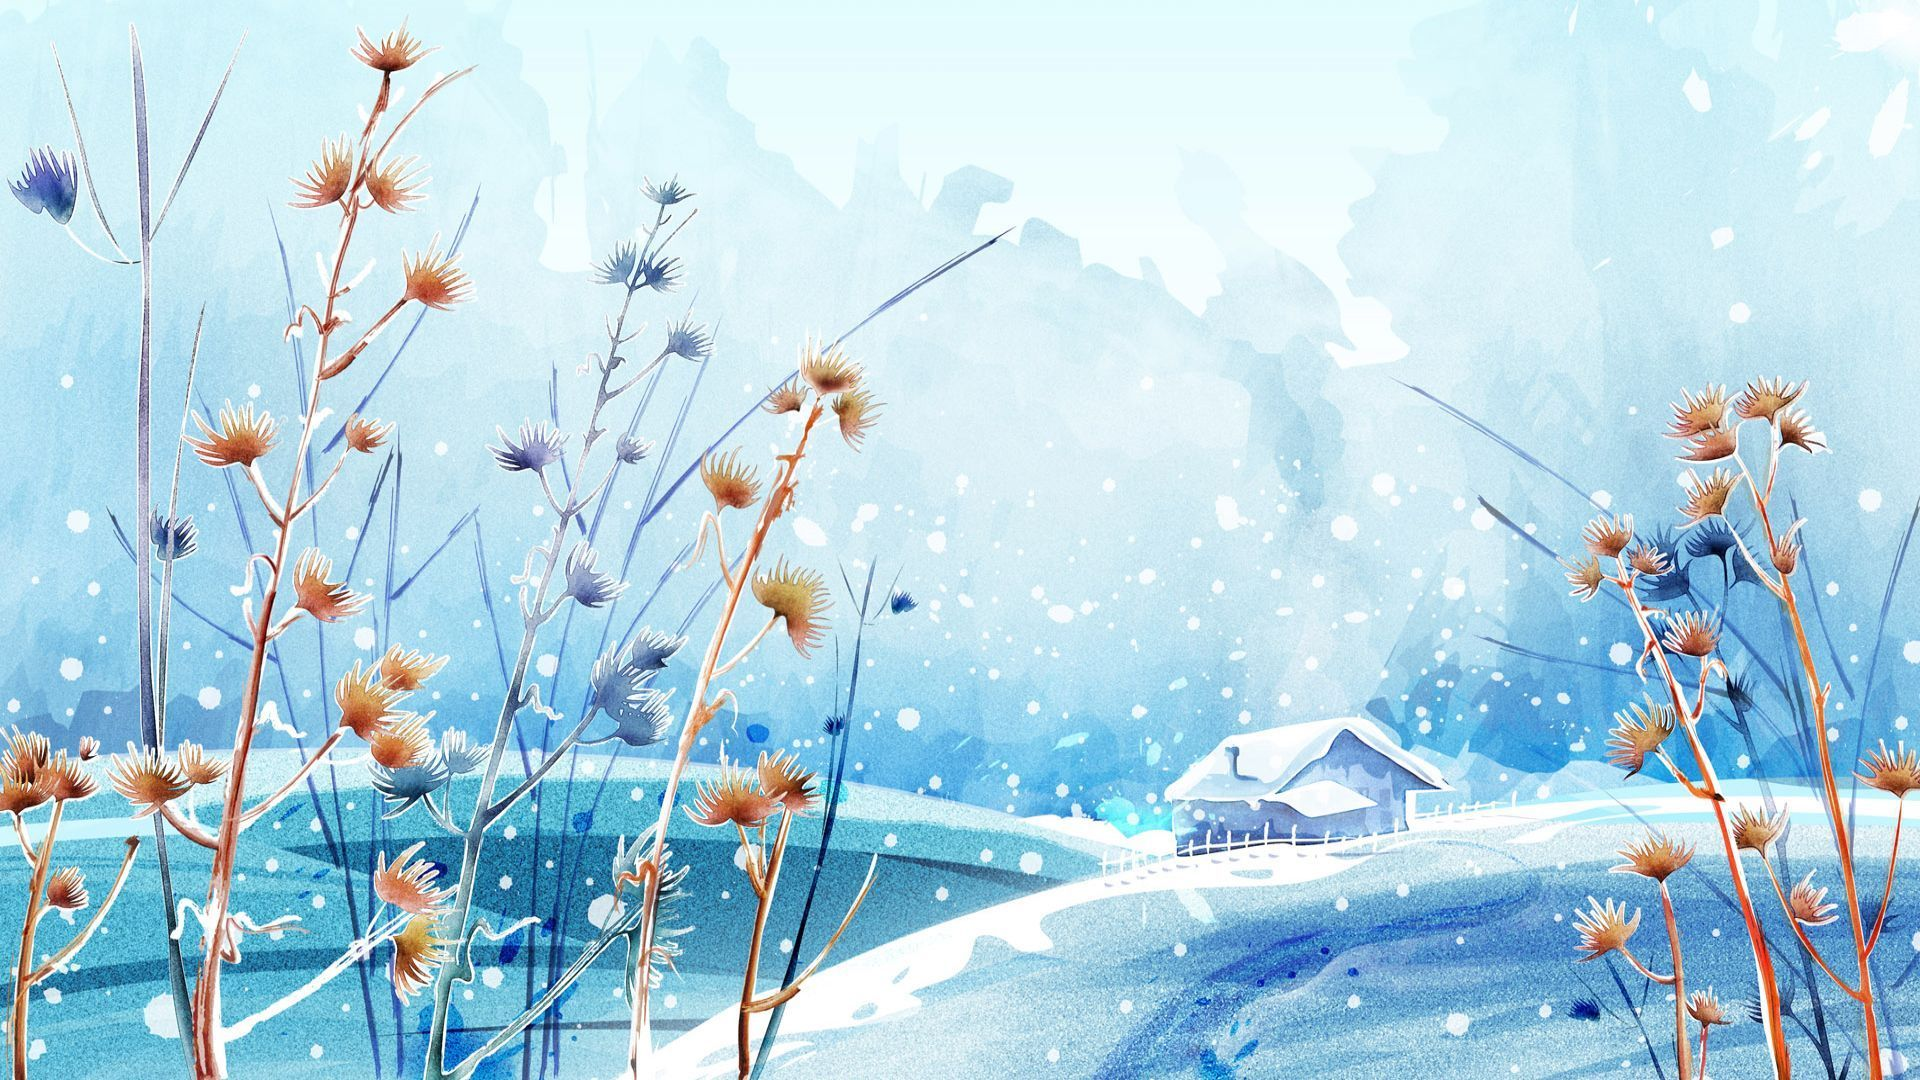 anime winter scenery wallpaper find best latest anime winter